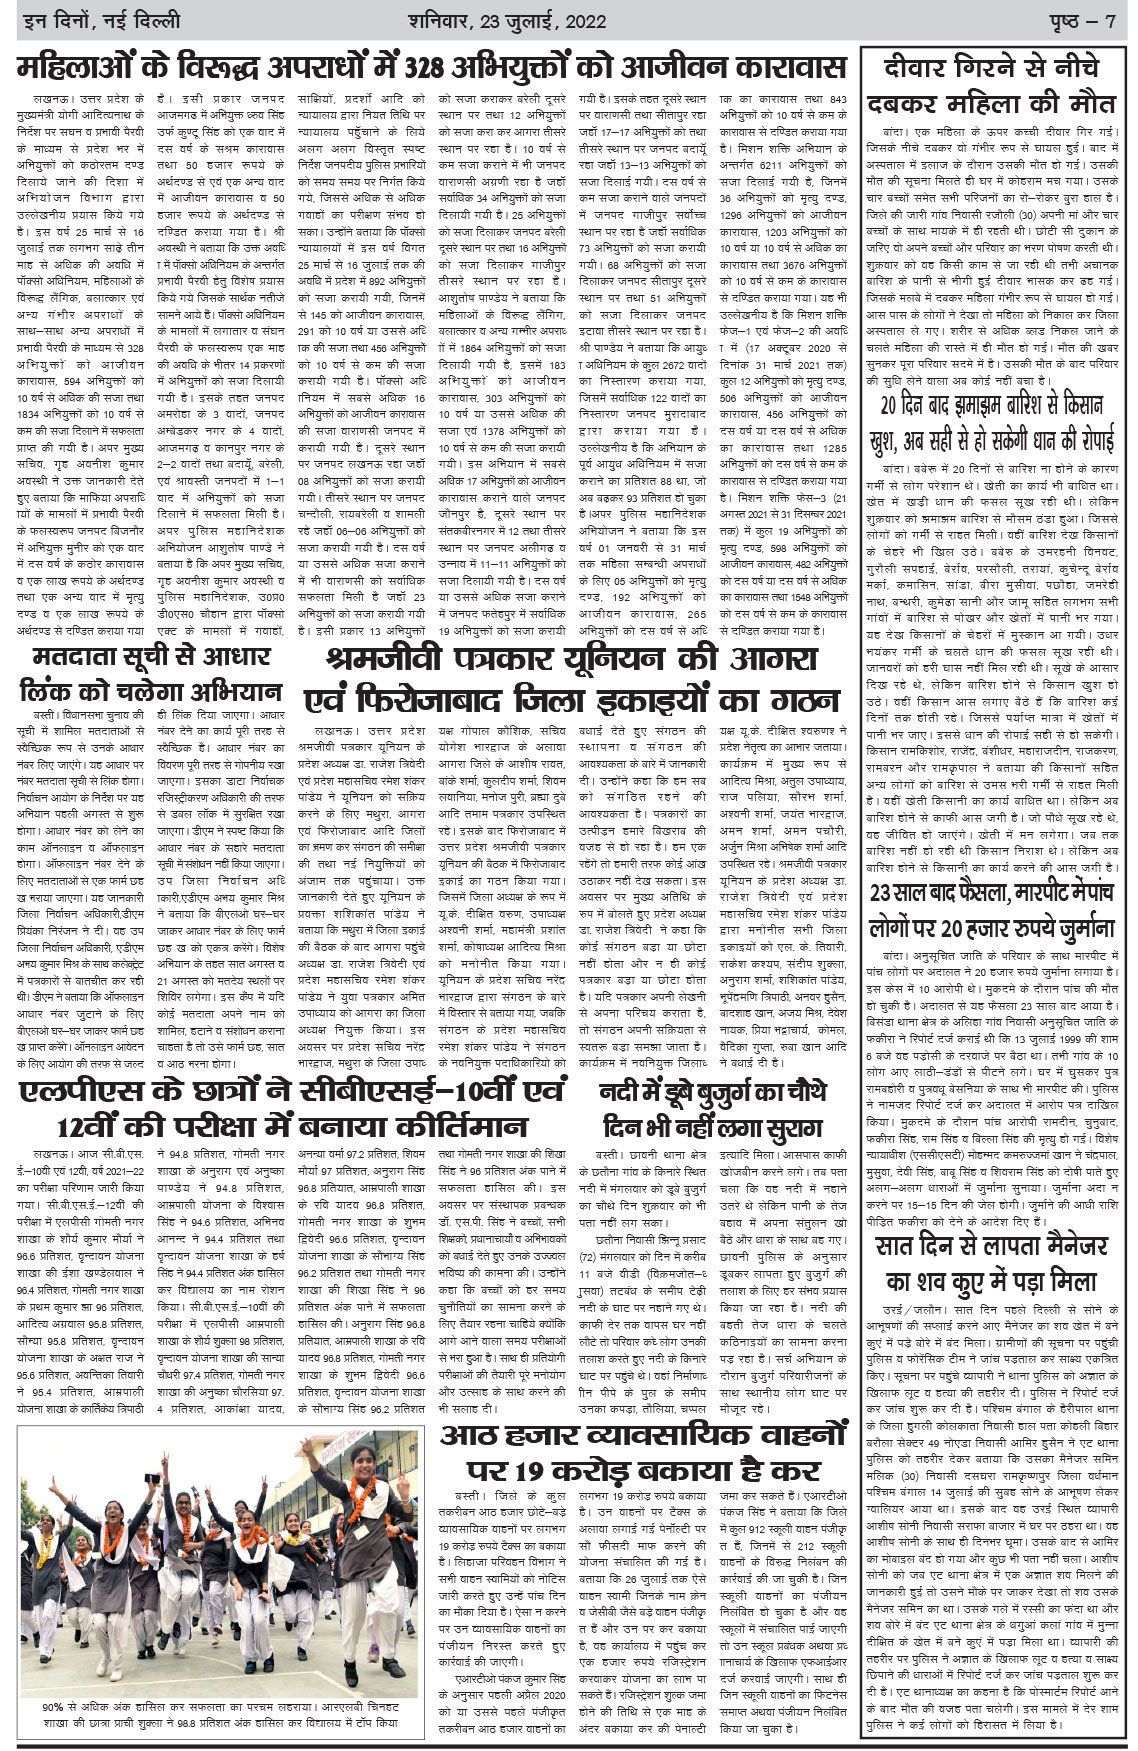 indinon, hindi news,Daily Indinon Urdu, news in hindi,English editions online, news paper hindi,Hindi editions online,daily hindi news, news india, news india hindi, indian news,news indian hindi , hindi news, indinon, latest hindi news, hindi latest, hindi news portal, hindi website,current hindi news, hindi newspaper, latest hindi news